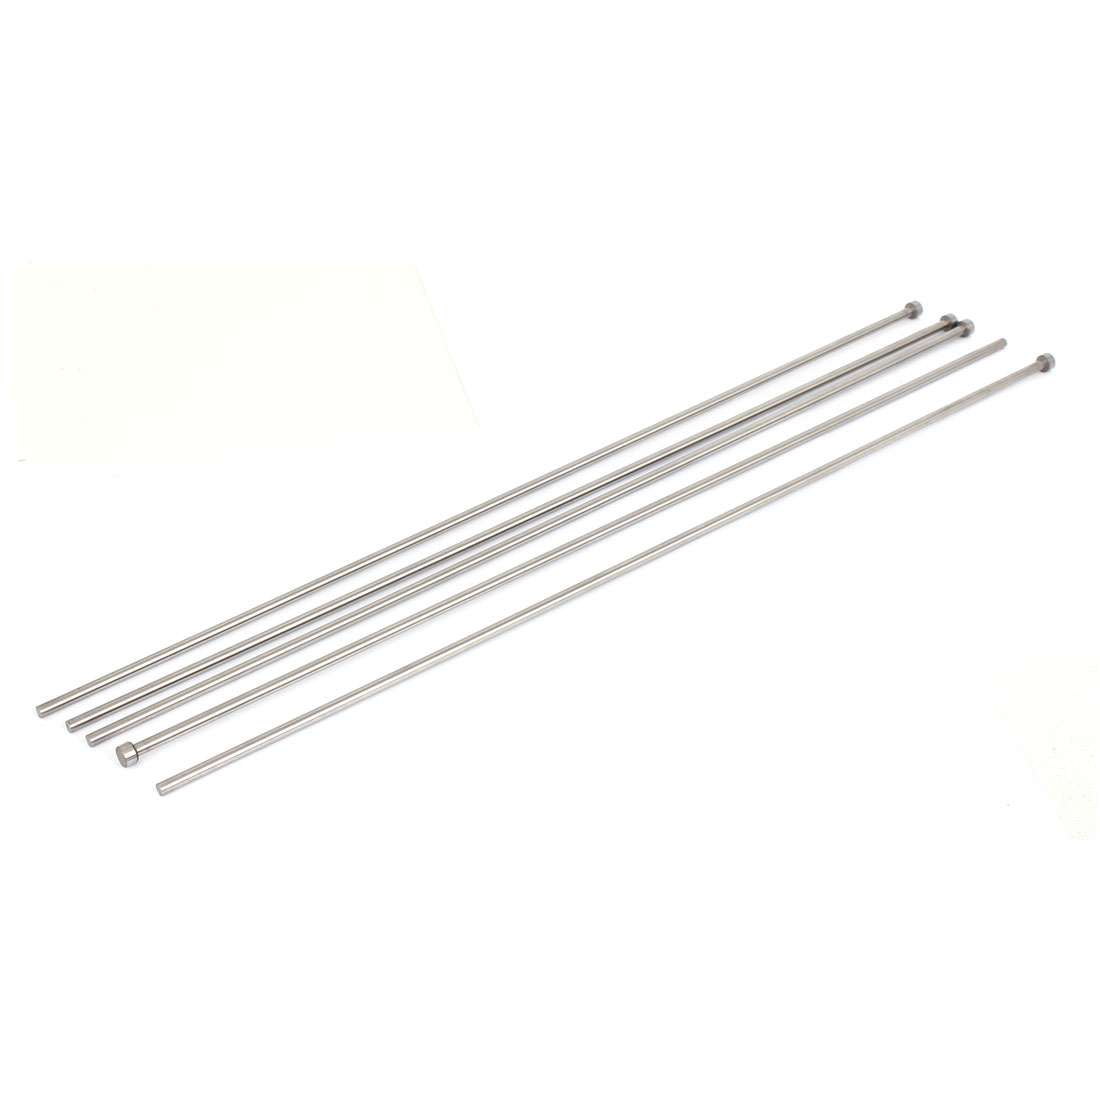 Die Mold Equipment Steel Straight Ejector Pins Punches 4.5mmx450mm Silver Gray 5pcs